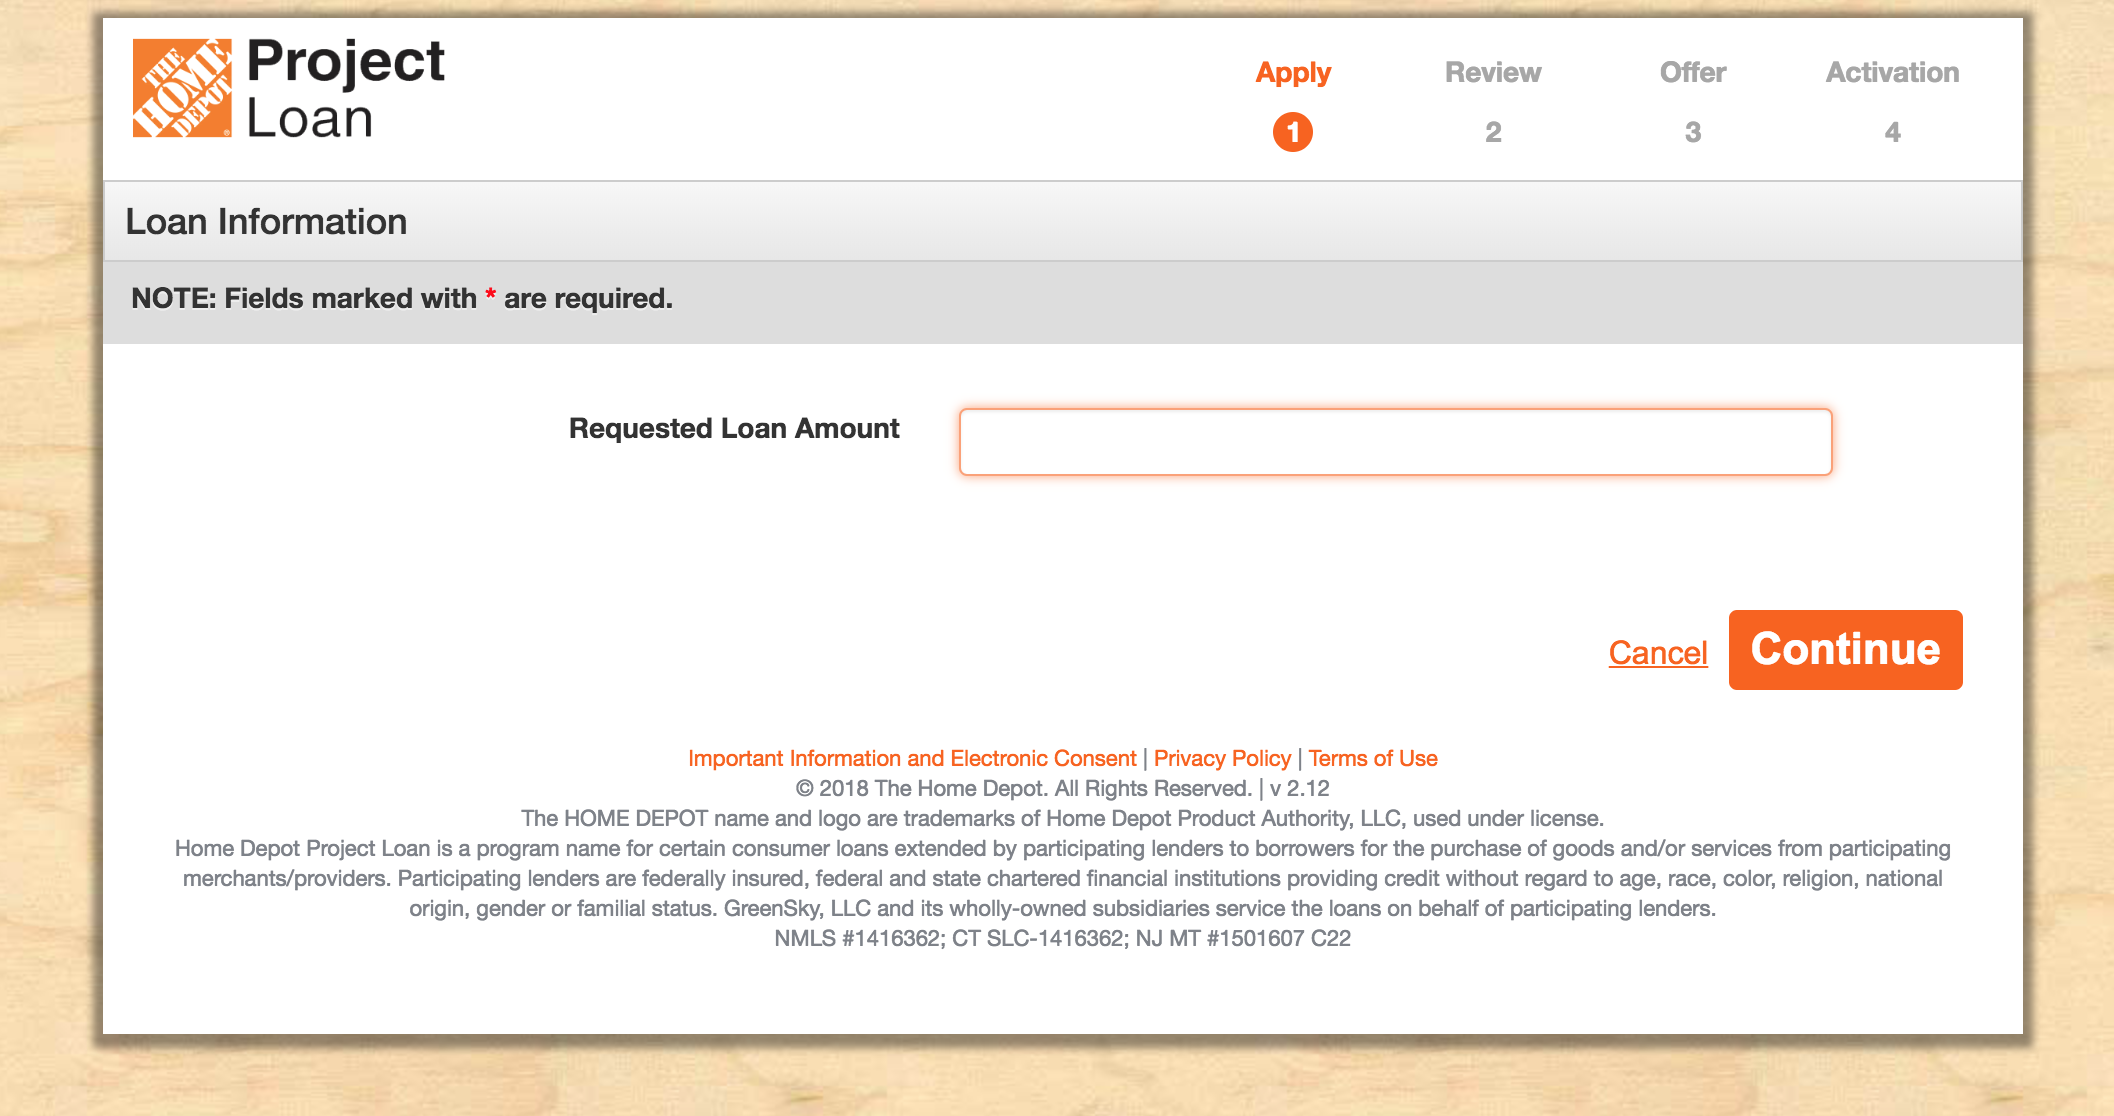 Home Depot Project Loan Application Page